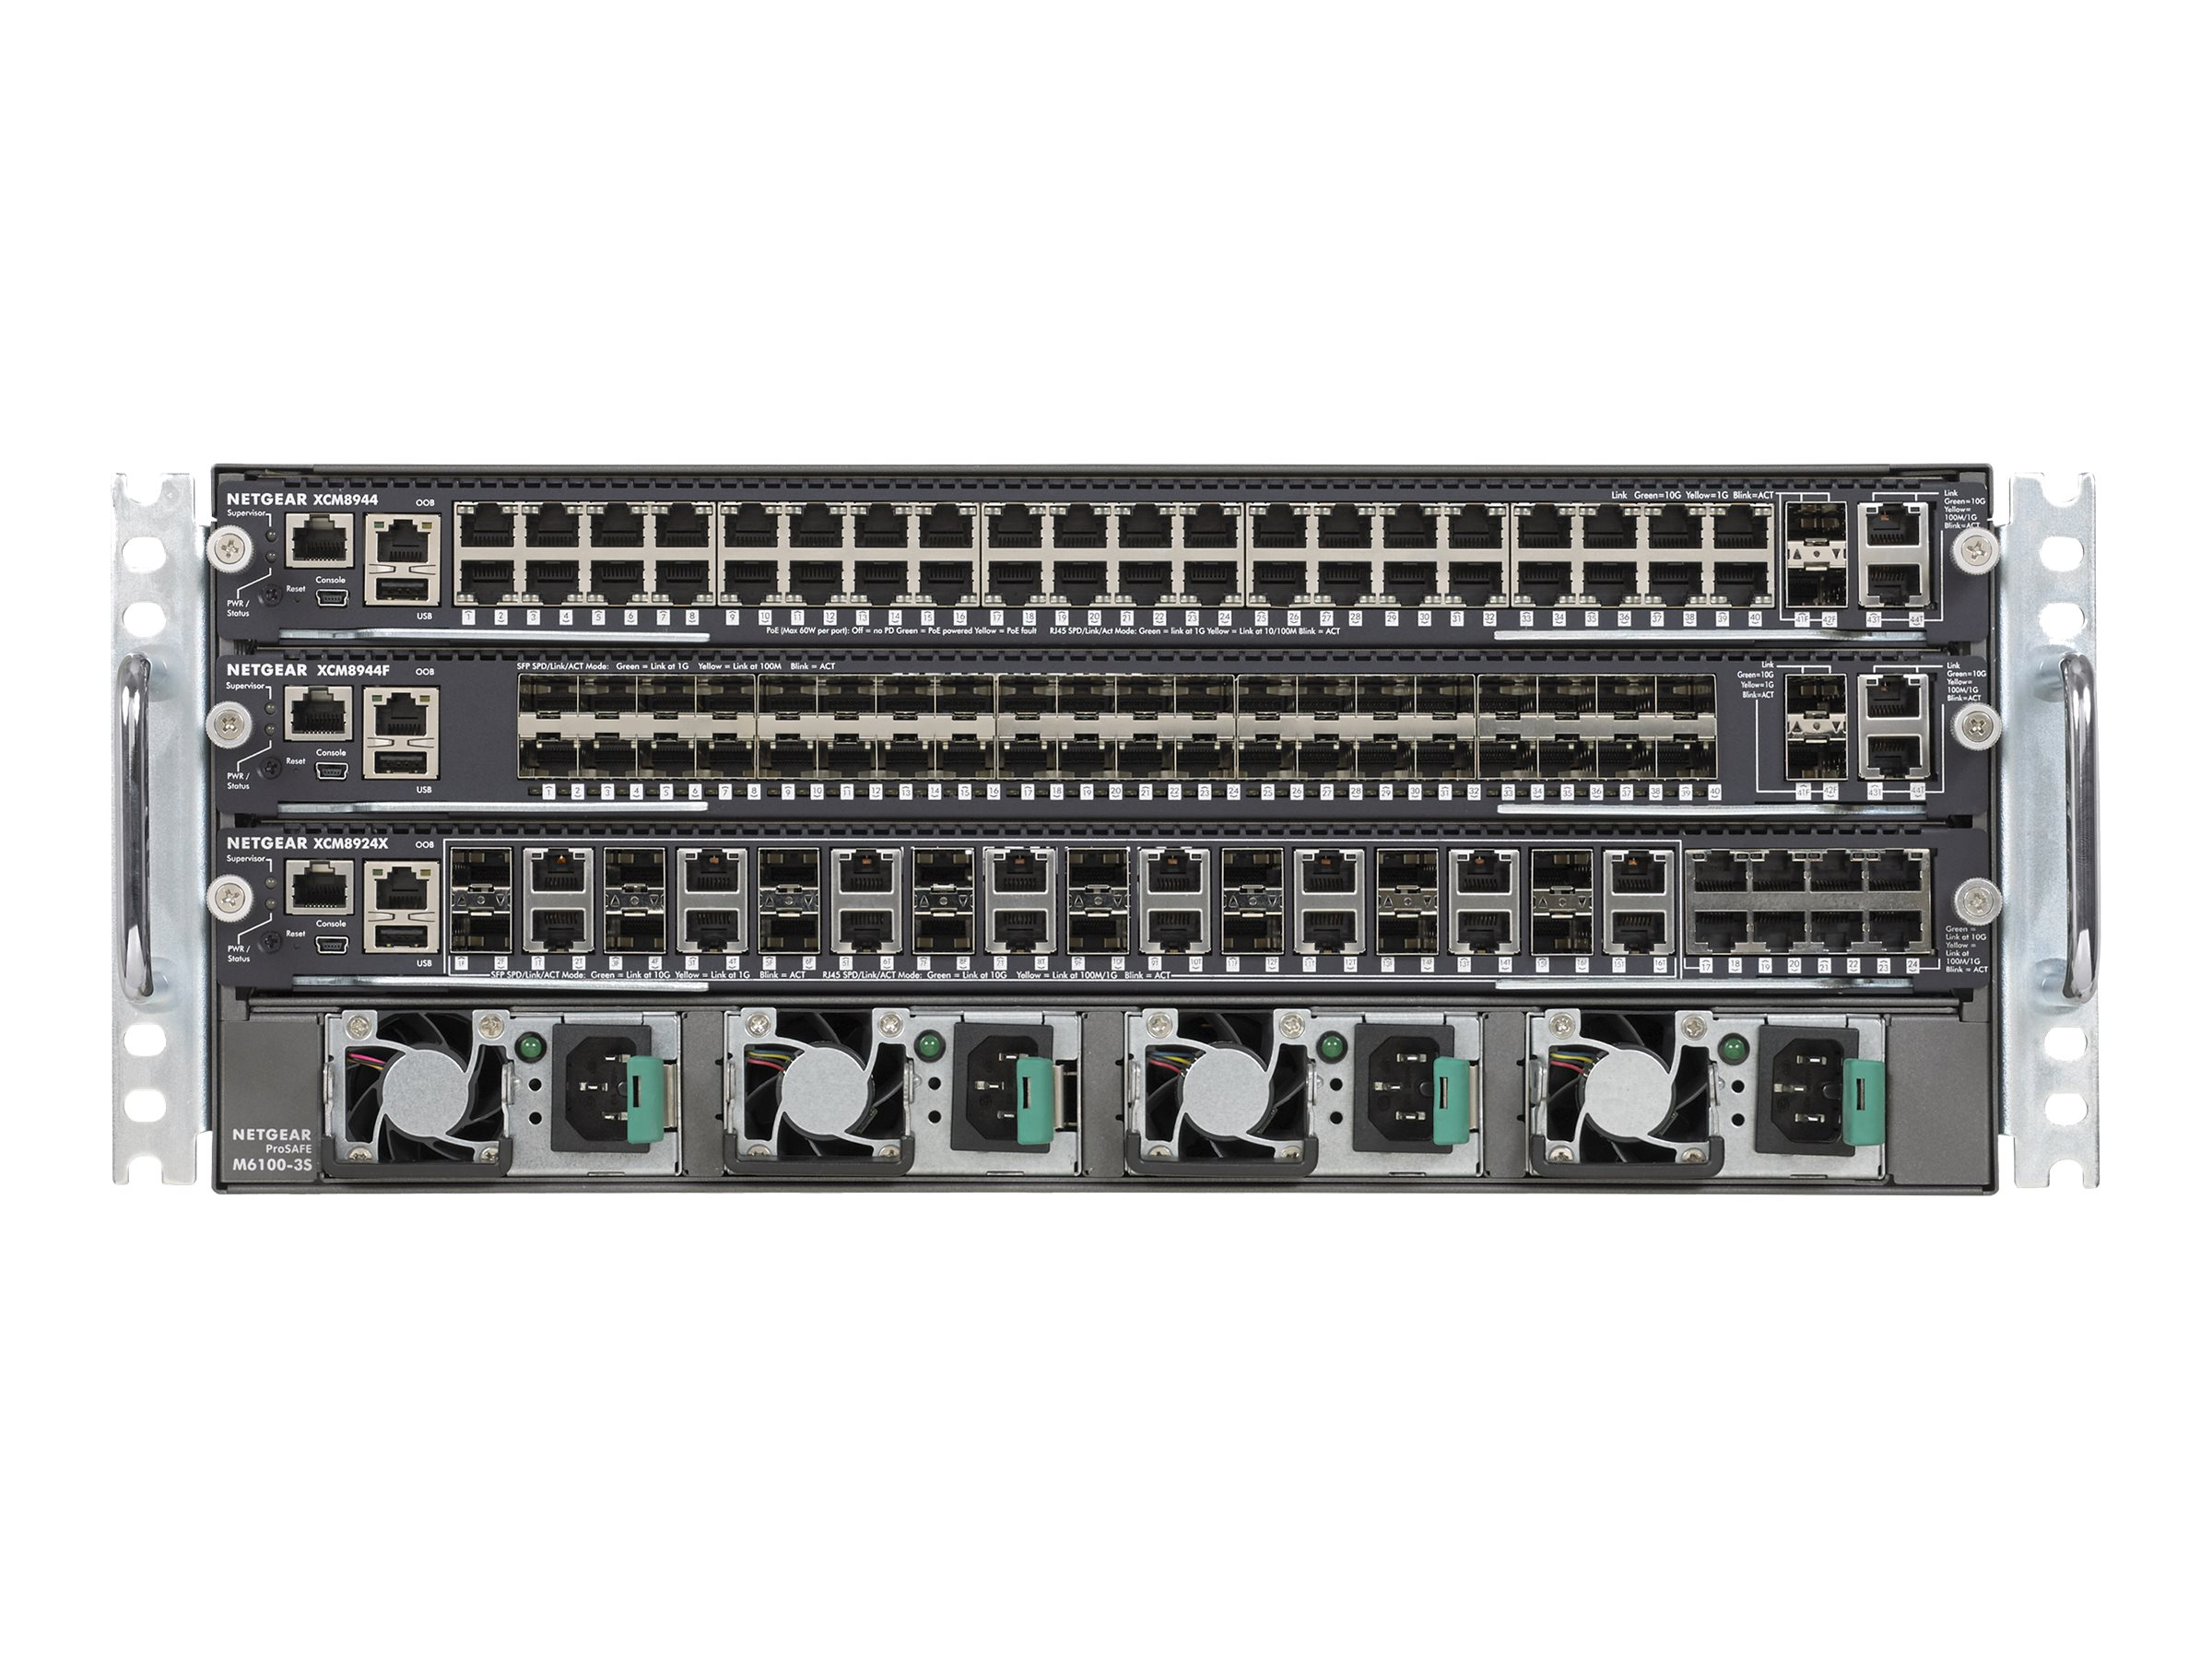 Netgear ProSAFE M6100-44G3-POE+ Chassis Switch Starter Kit Bundle, XCM8903SK-10000S, 18366094, Network Switches